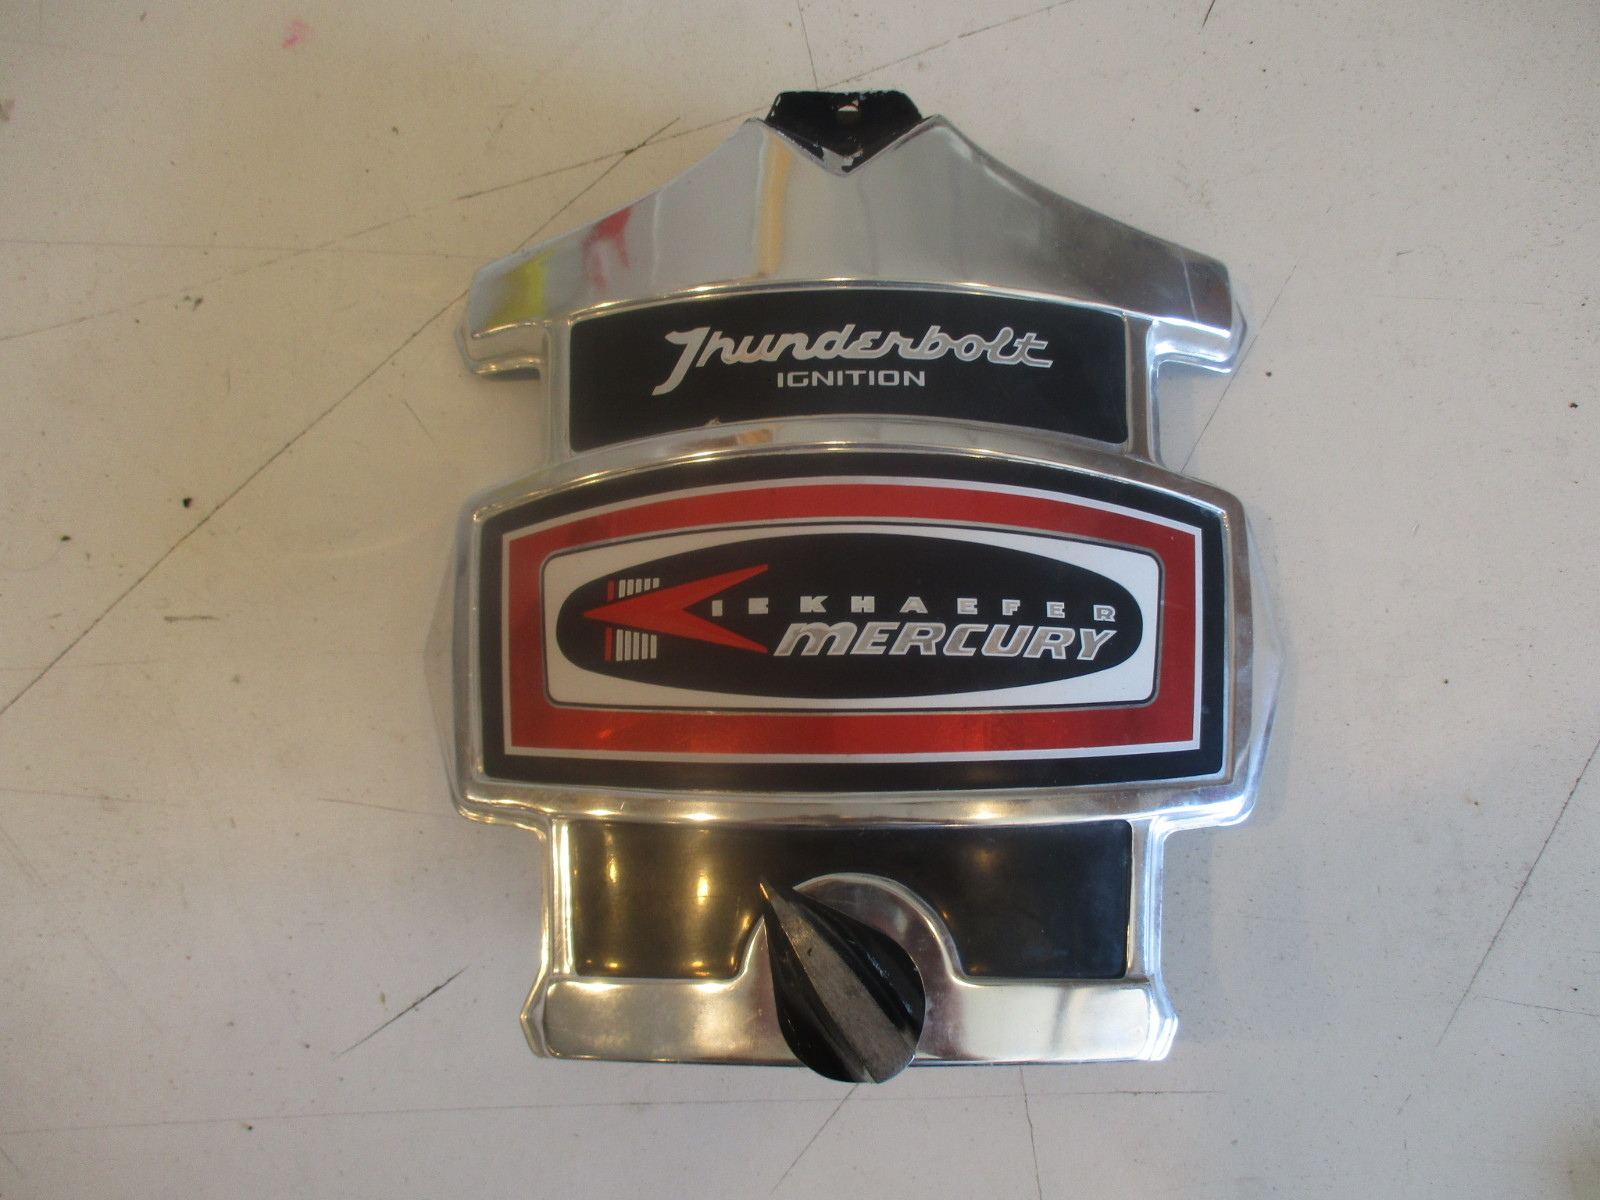 Mercury outboard thunderbolt 4 cylinder red decal chrome for Mercury outboard motor cowling